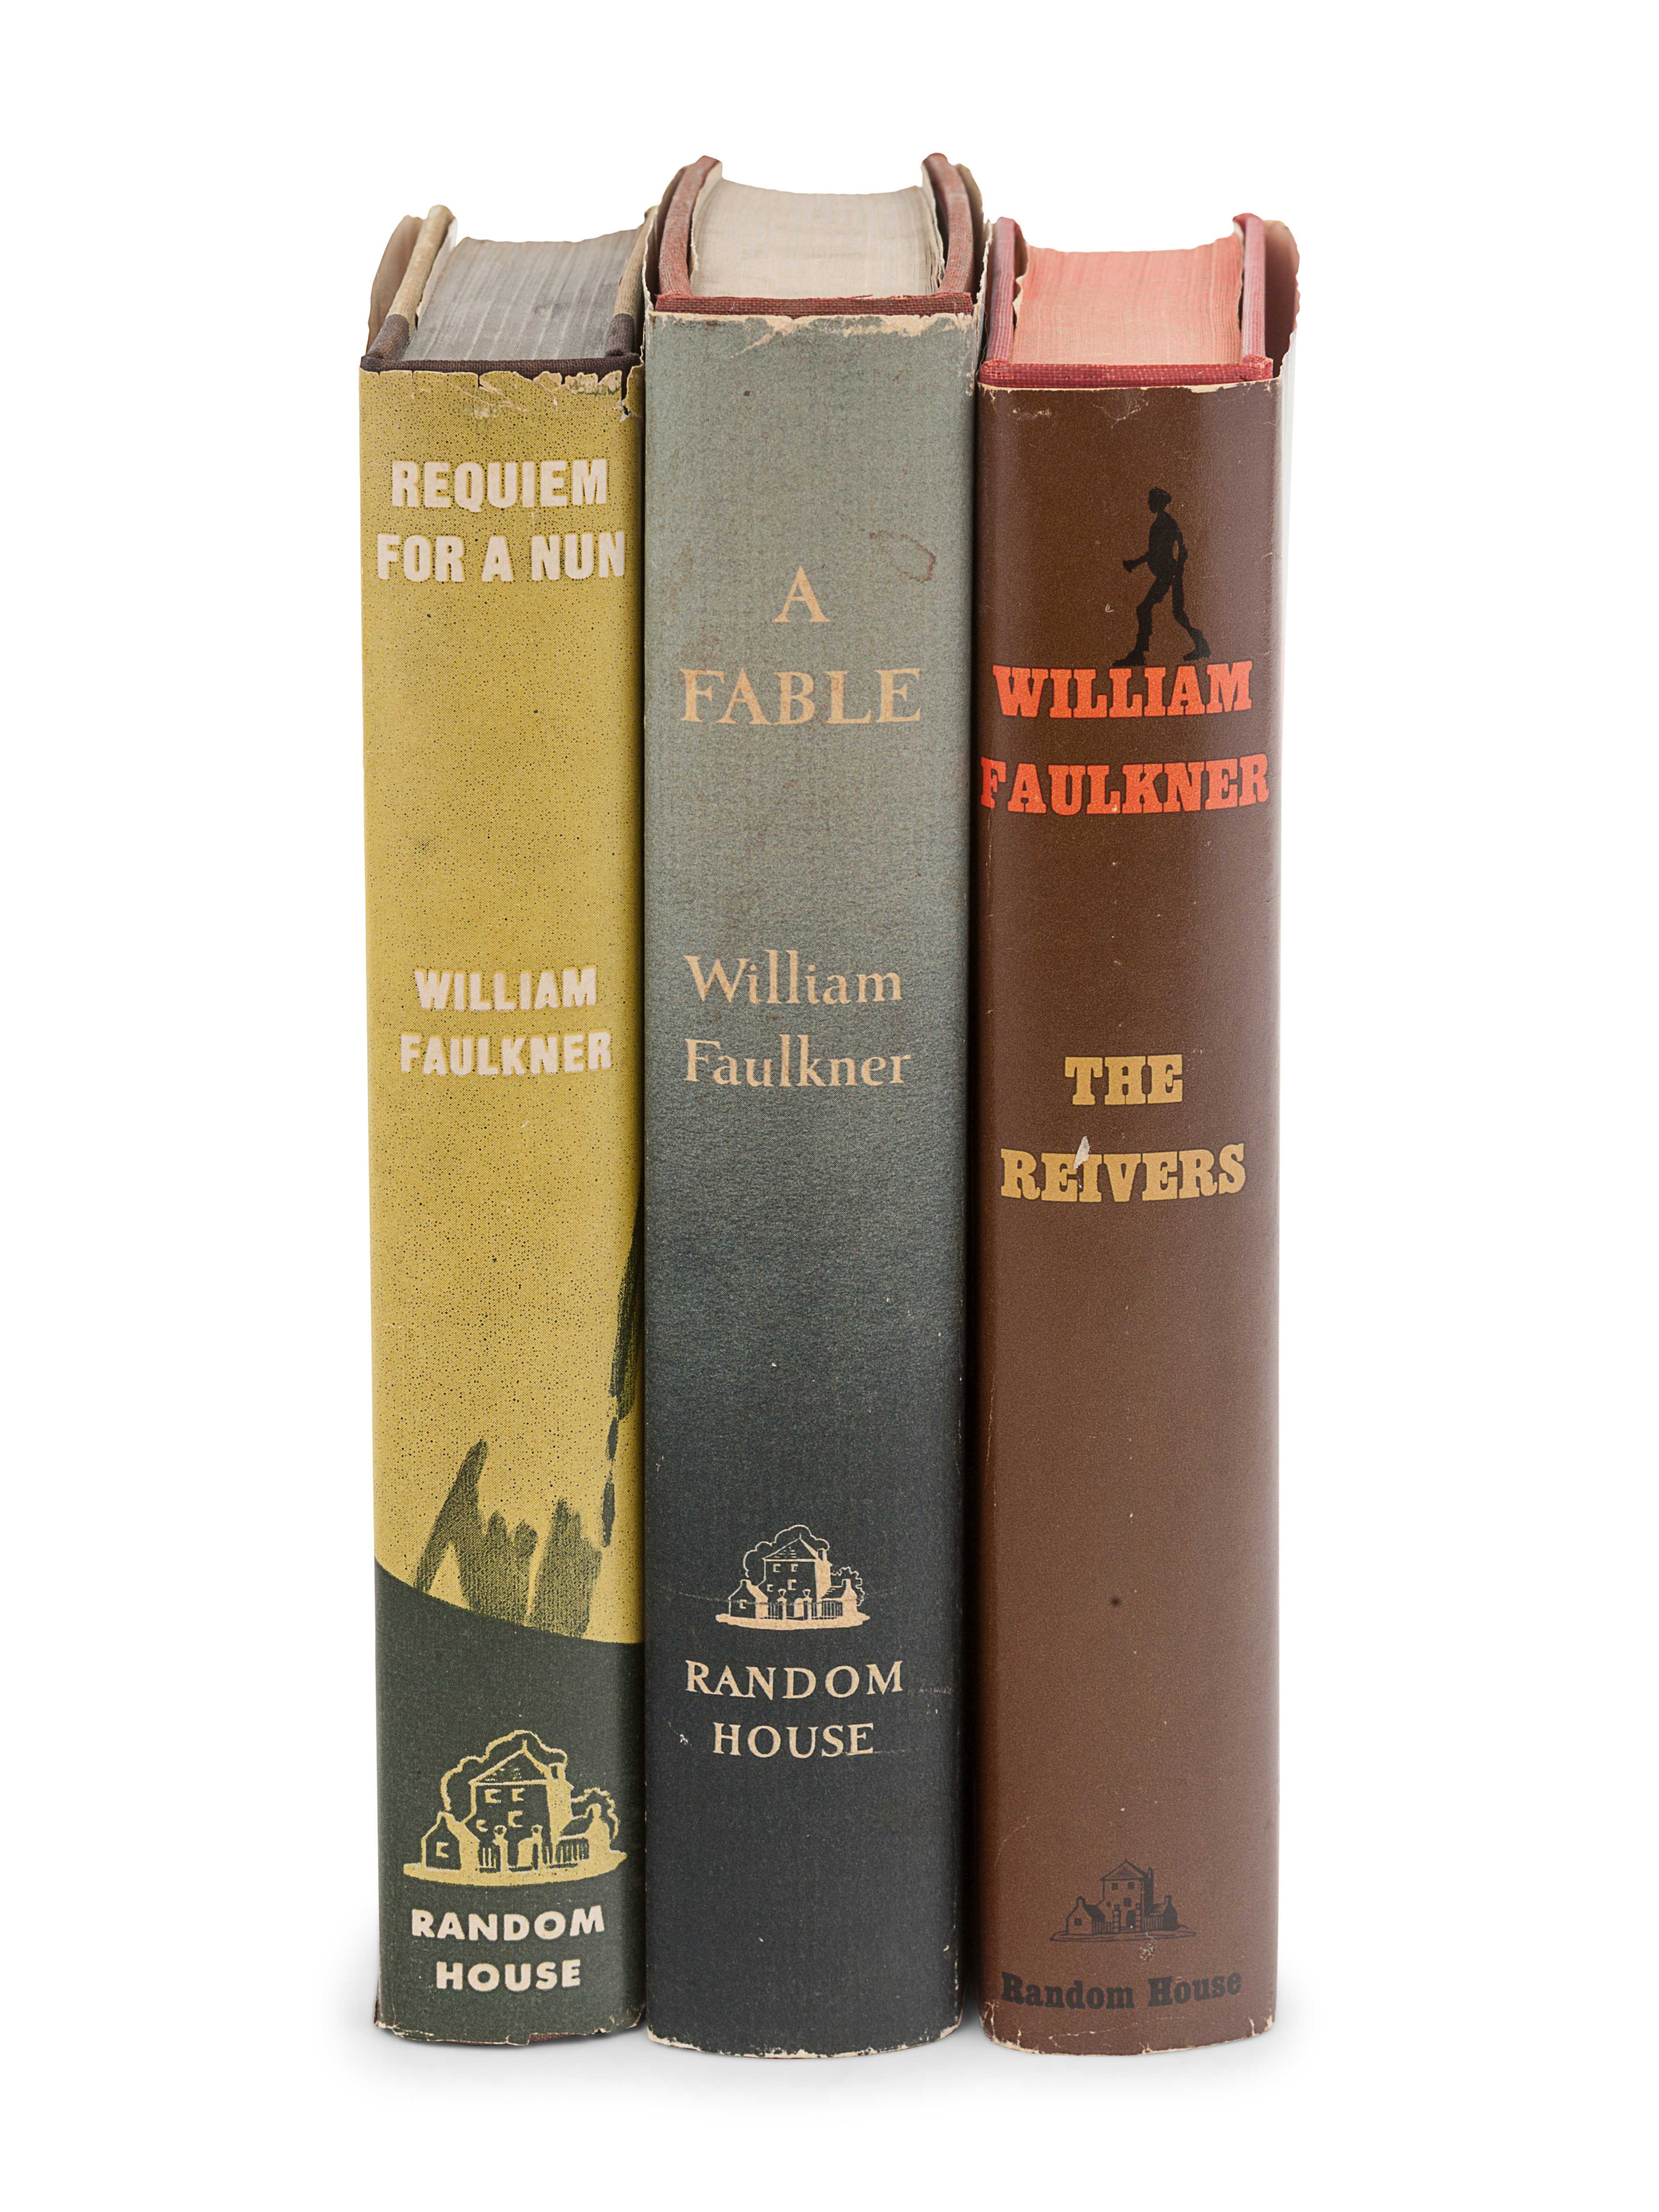 FAULKNER, William (1897-1962). A group of FIRST EDITIONS, comprising: